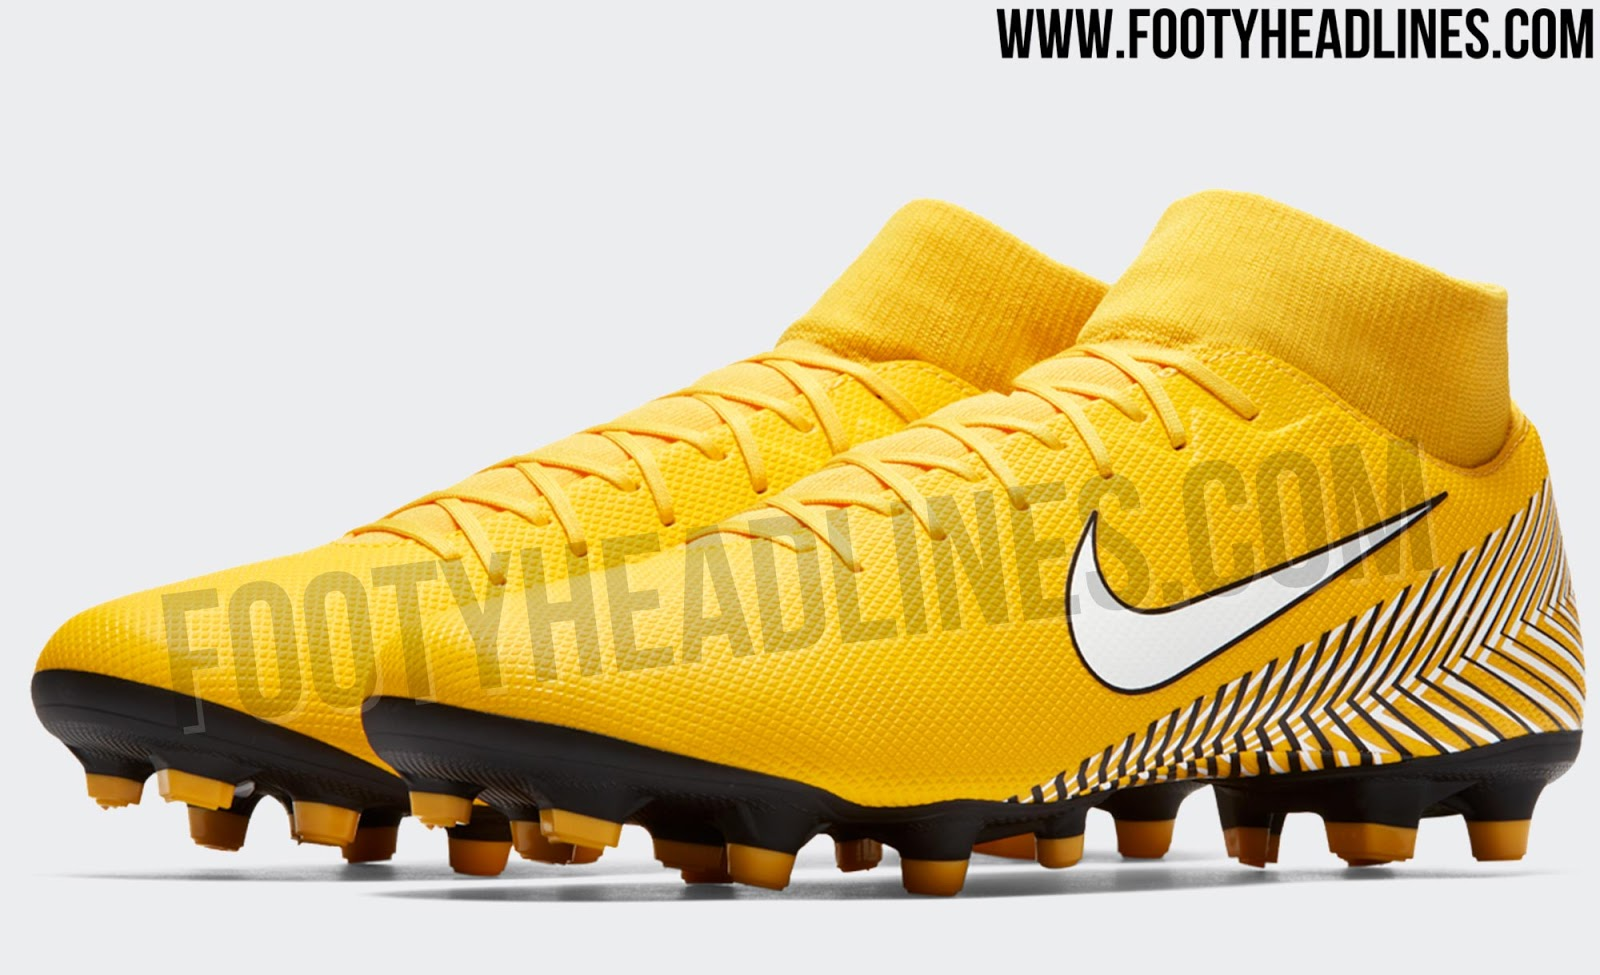 6d3b3de122a 2018 World Cup Knock-Out Stage Boots   Amarillo  Nike Mercurial ...